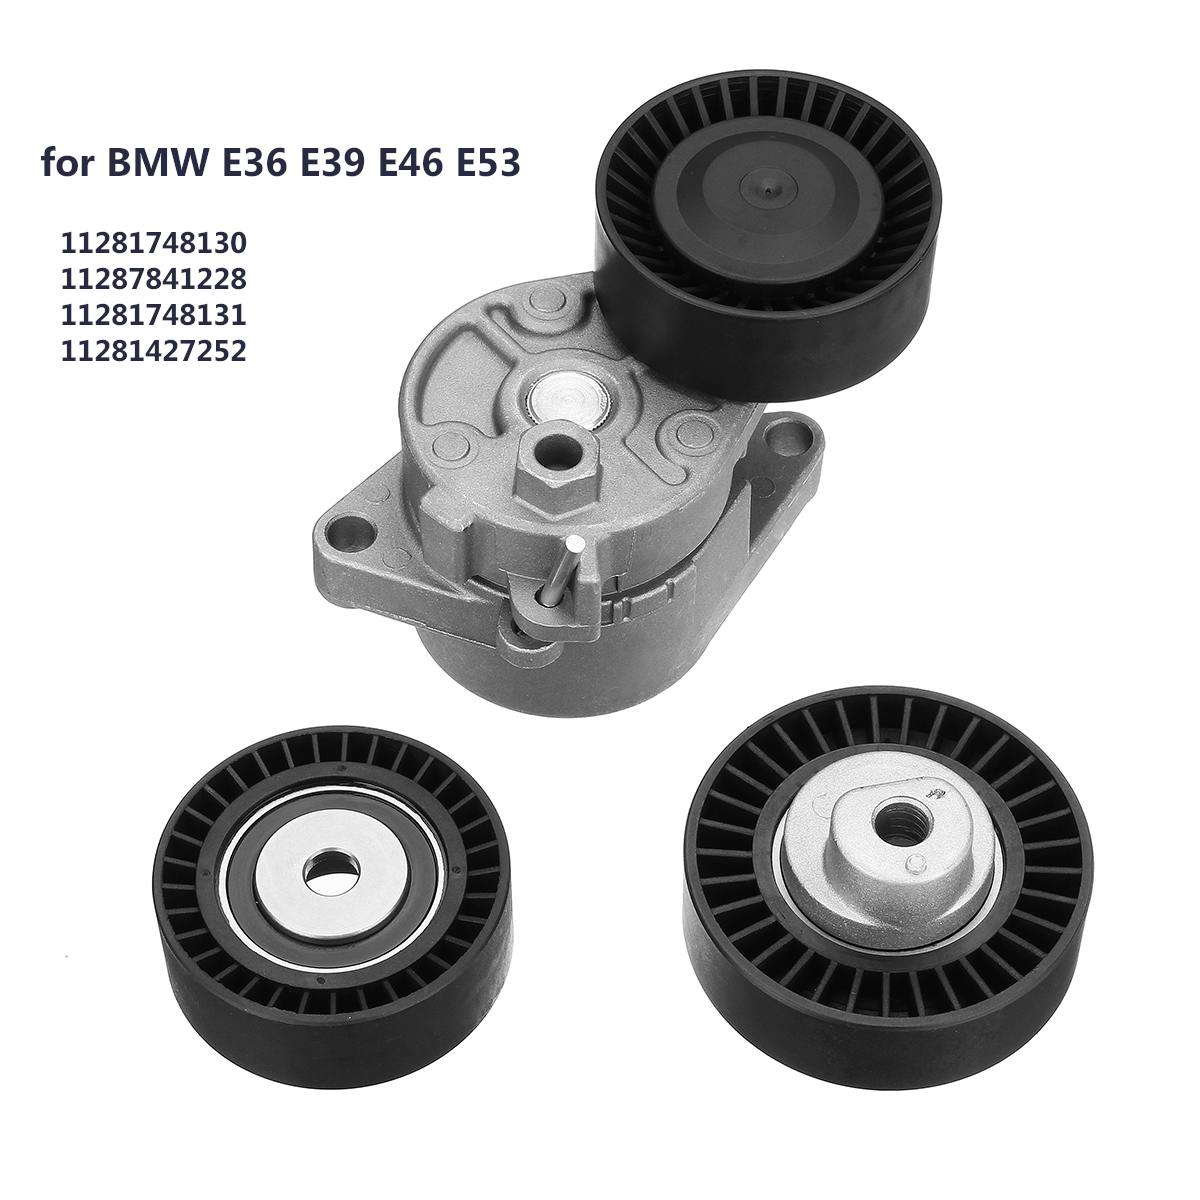 Set of Belt Tensioner + Idler Pulley Kit Replacement for BMW E36 E39 E46 E53 11287841228 Belts  Pulleys  & Brackets     - title=